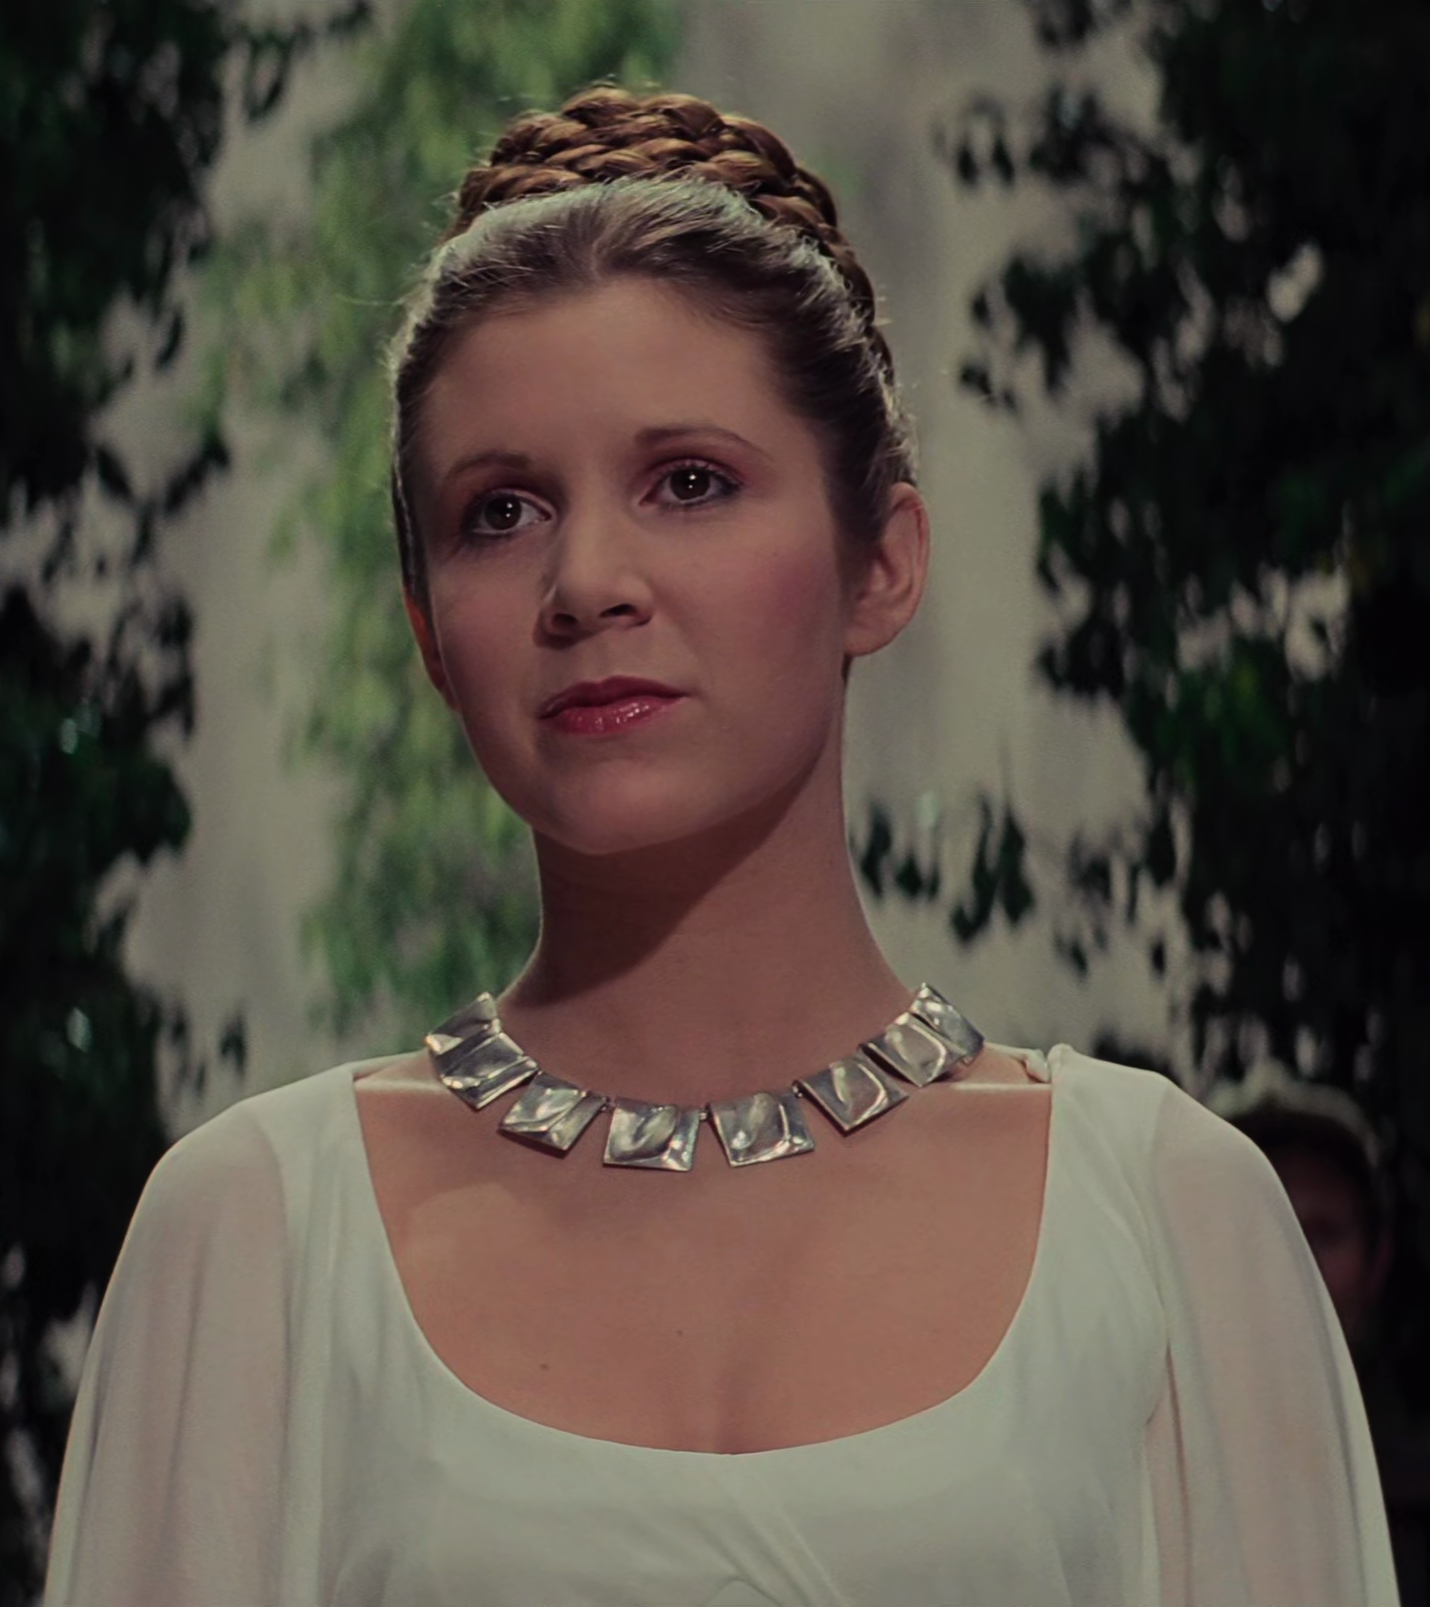 http://vignette4.wikia.nocookie.net/starwars/images/8/83/Sw4-Leia2.png/revision/latest?cb=20130318061220